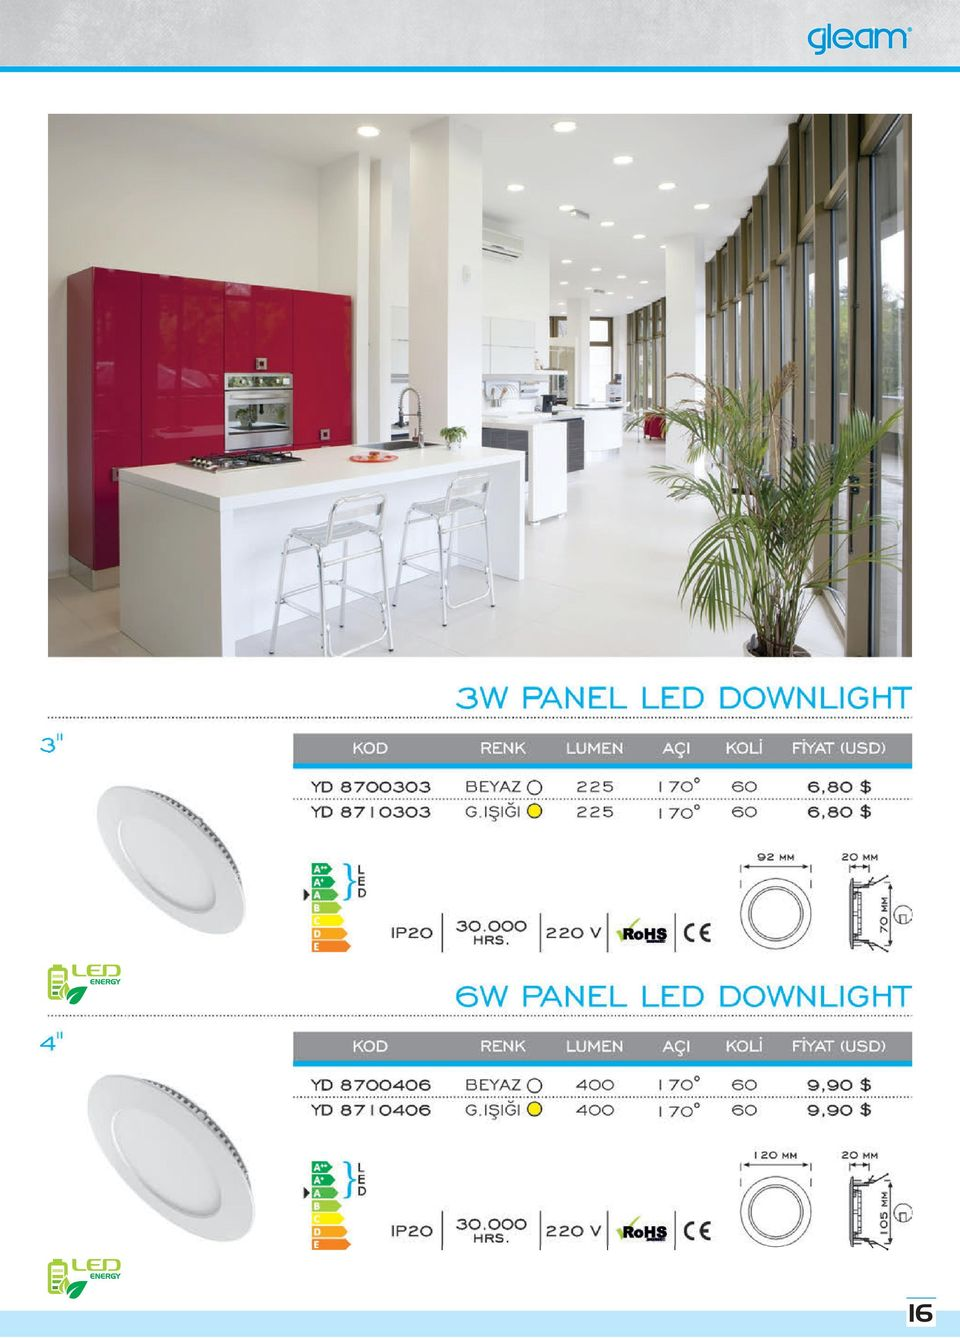 mm 4'' 6W PANEL LED DOWNLIGHT YD 8700406 YD